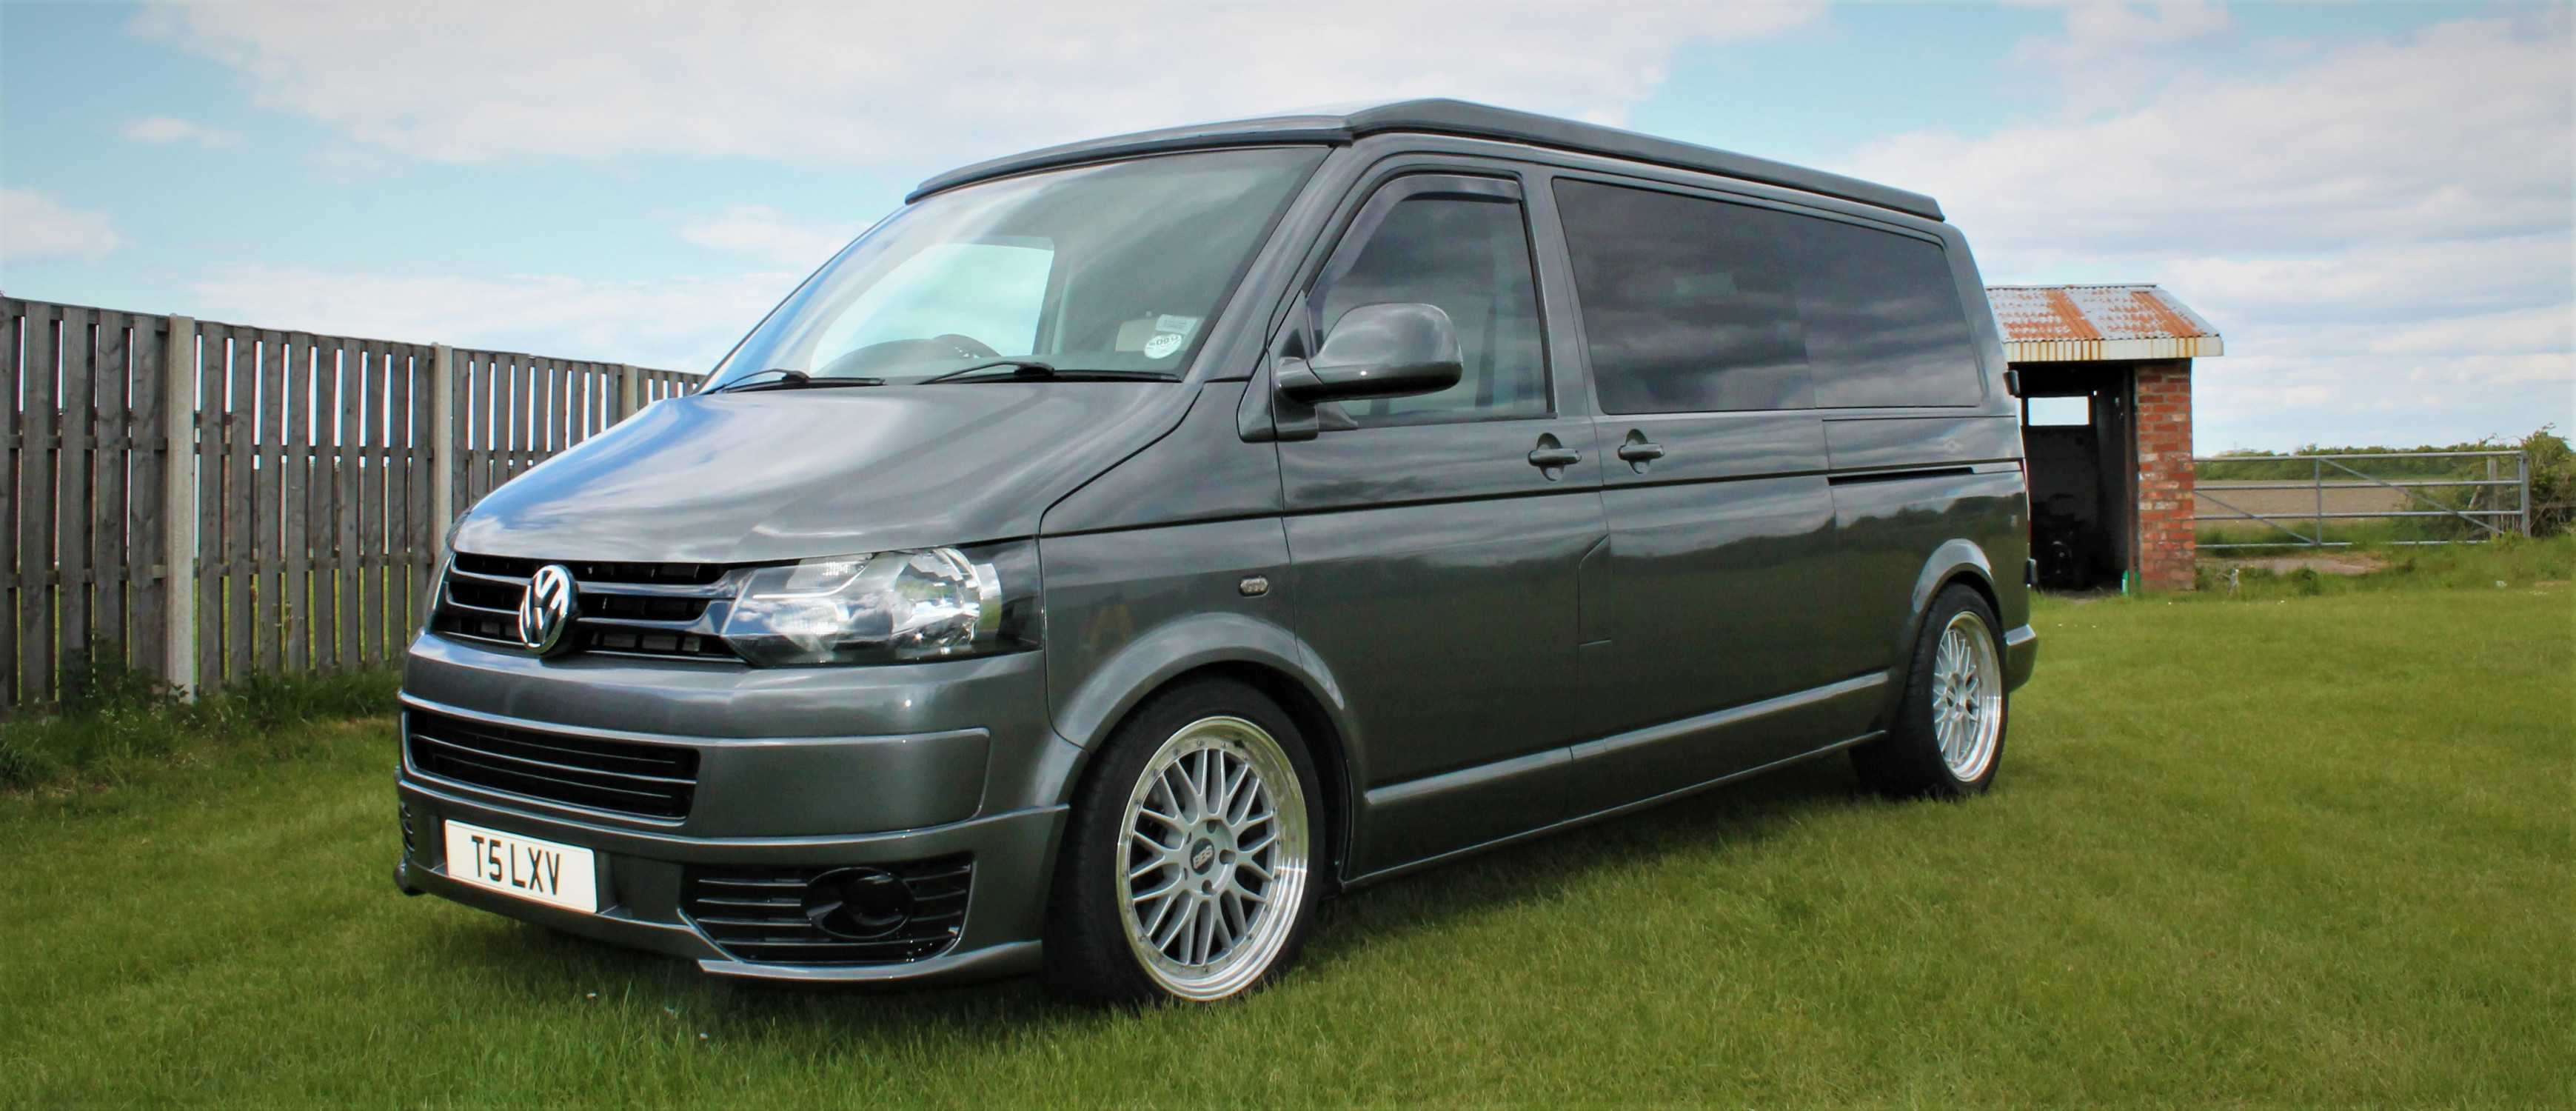 A VW T5 Campervan called Sky and for hire in poulton-le-fylde, Lancashire